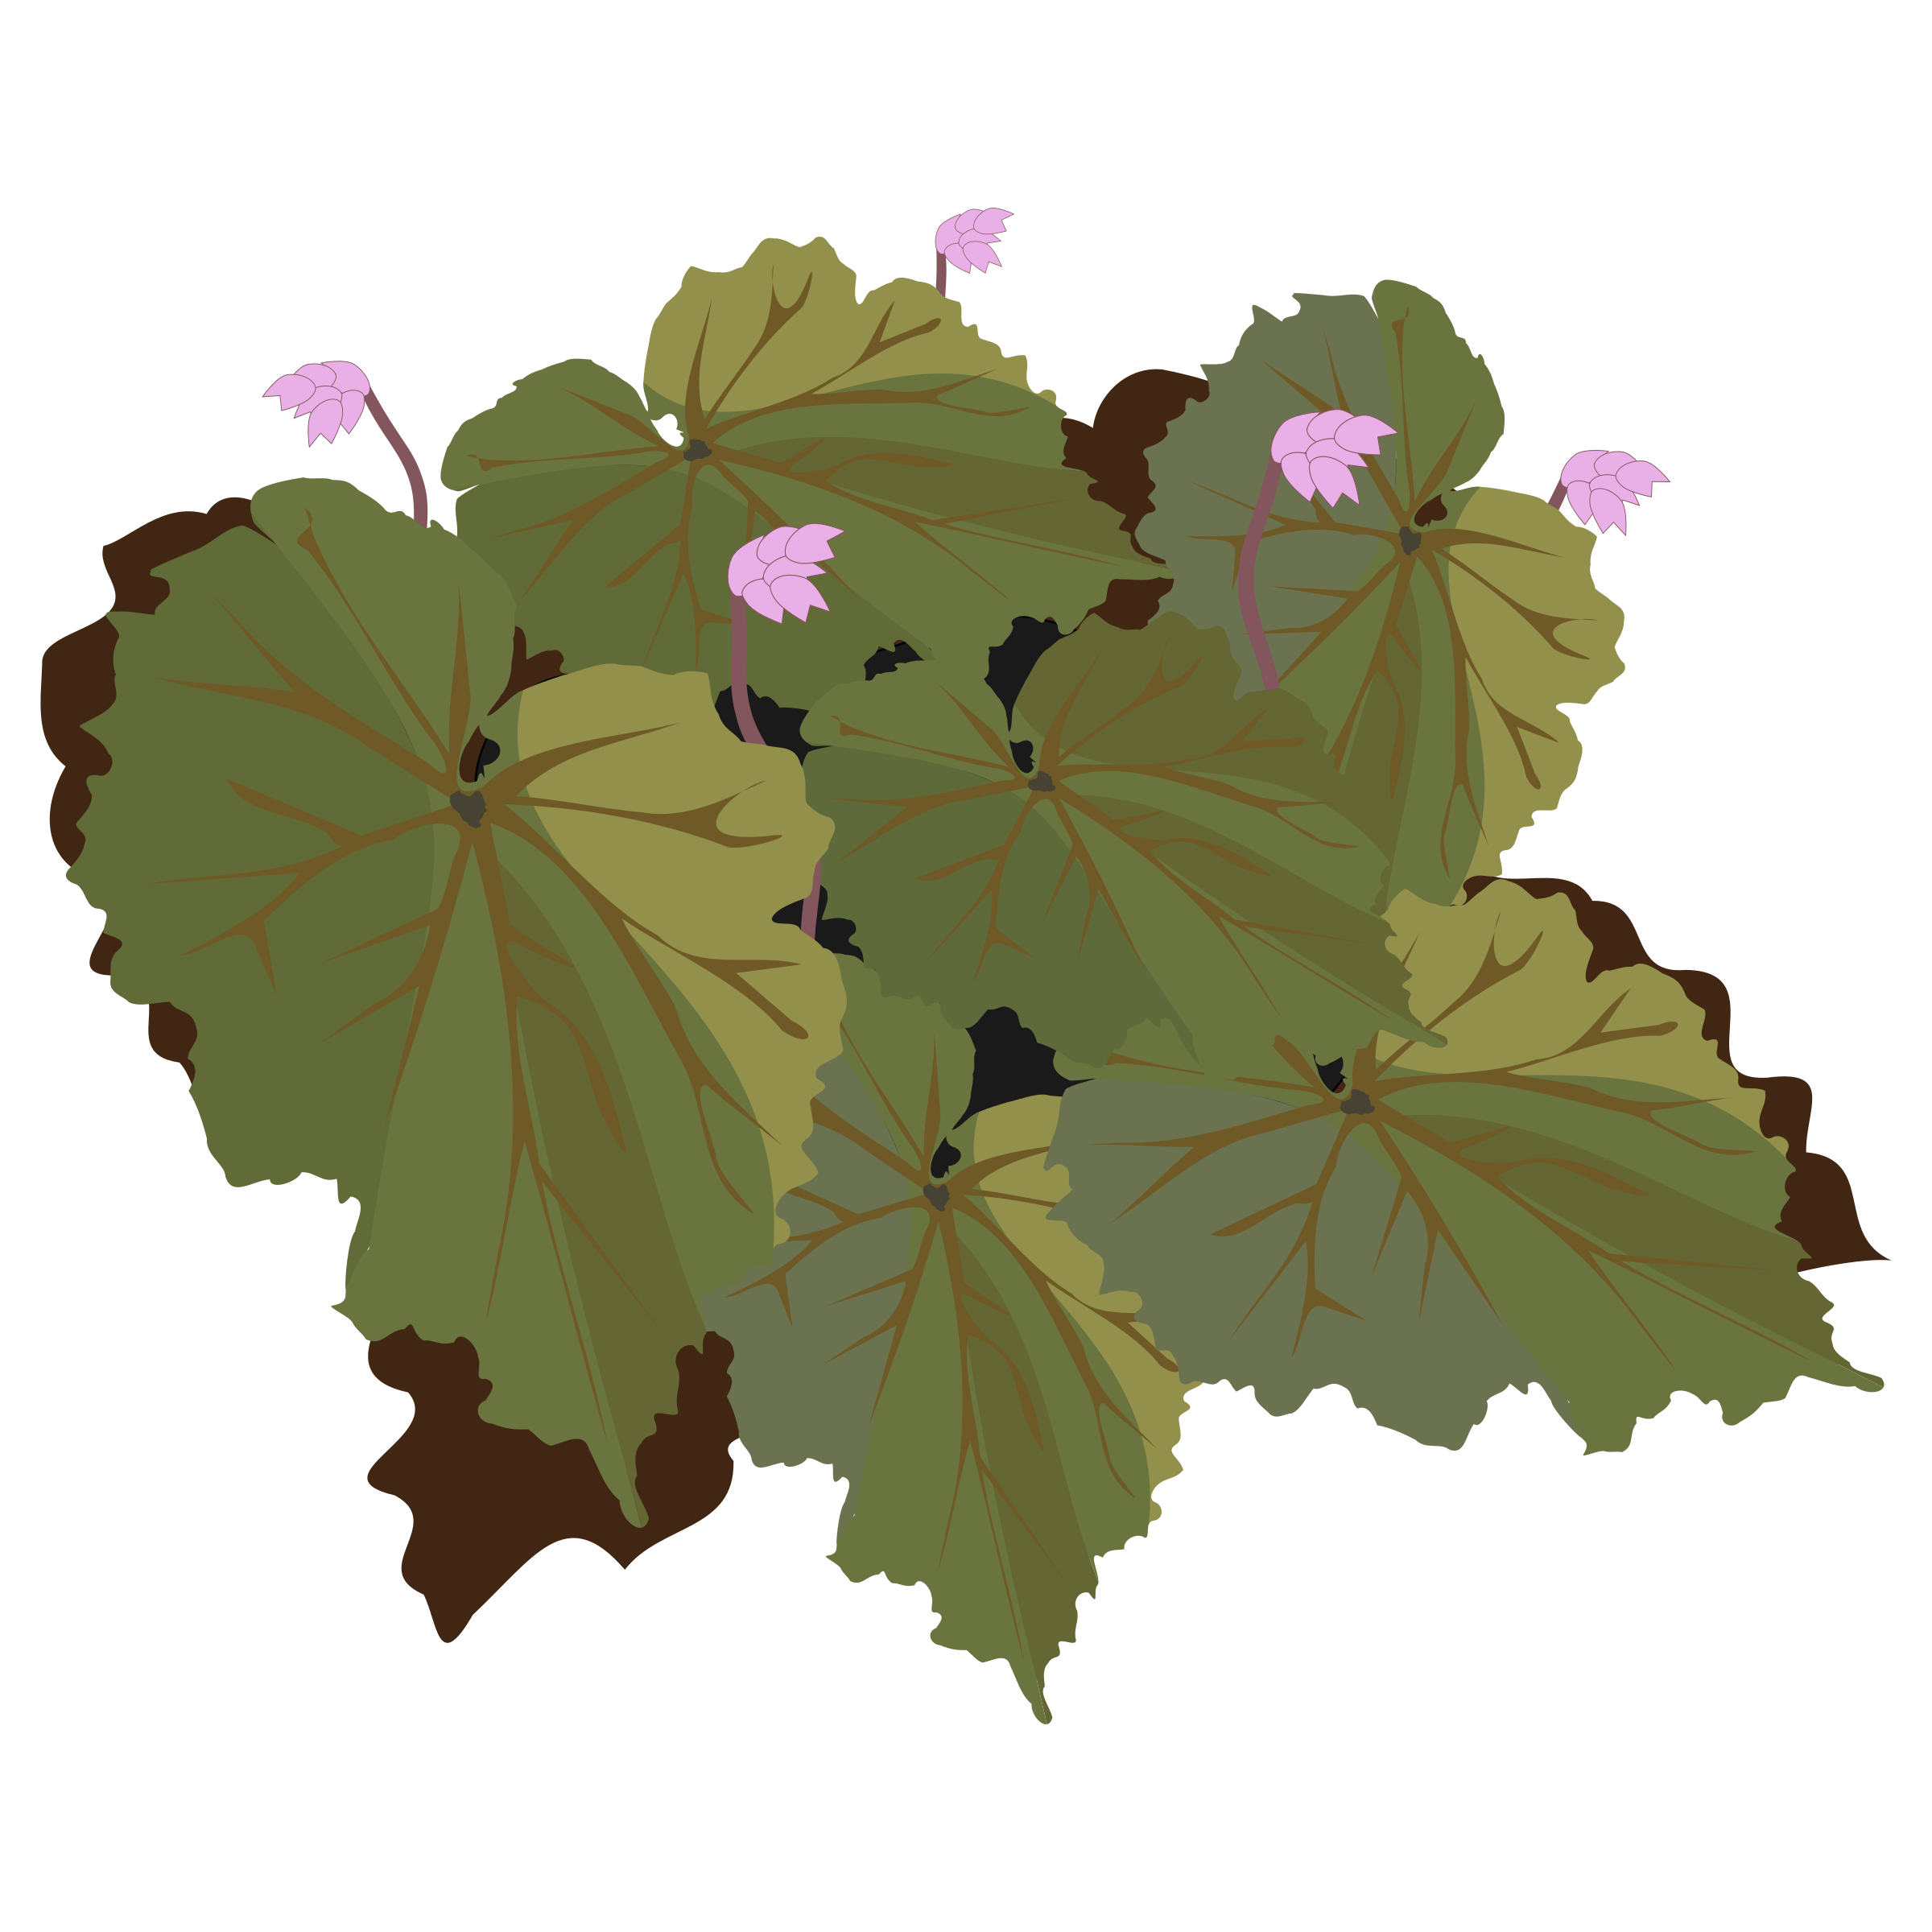 Begonia clipart #4, Download drawings